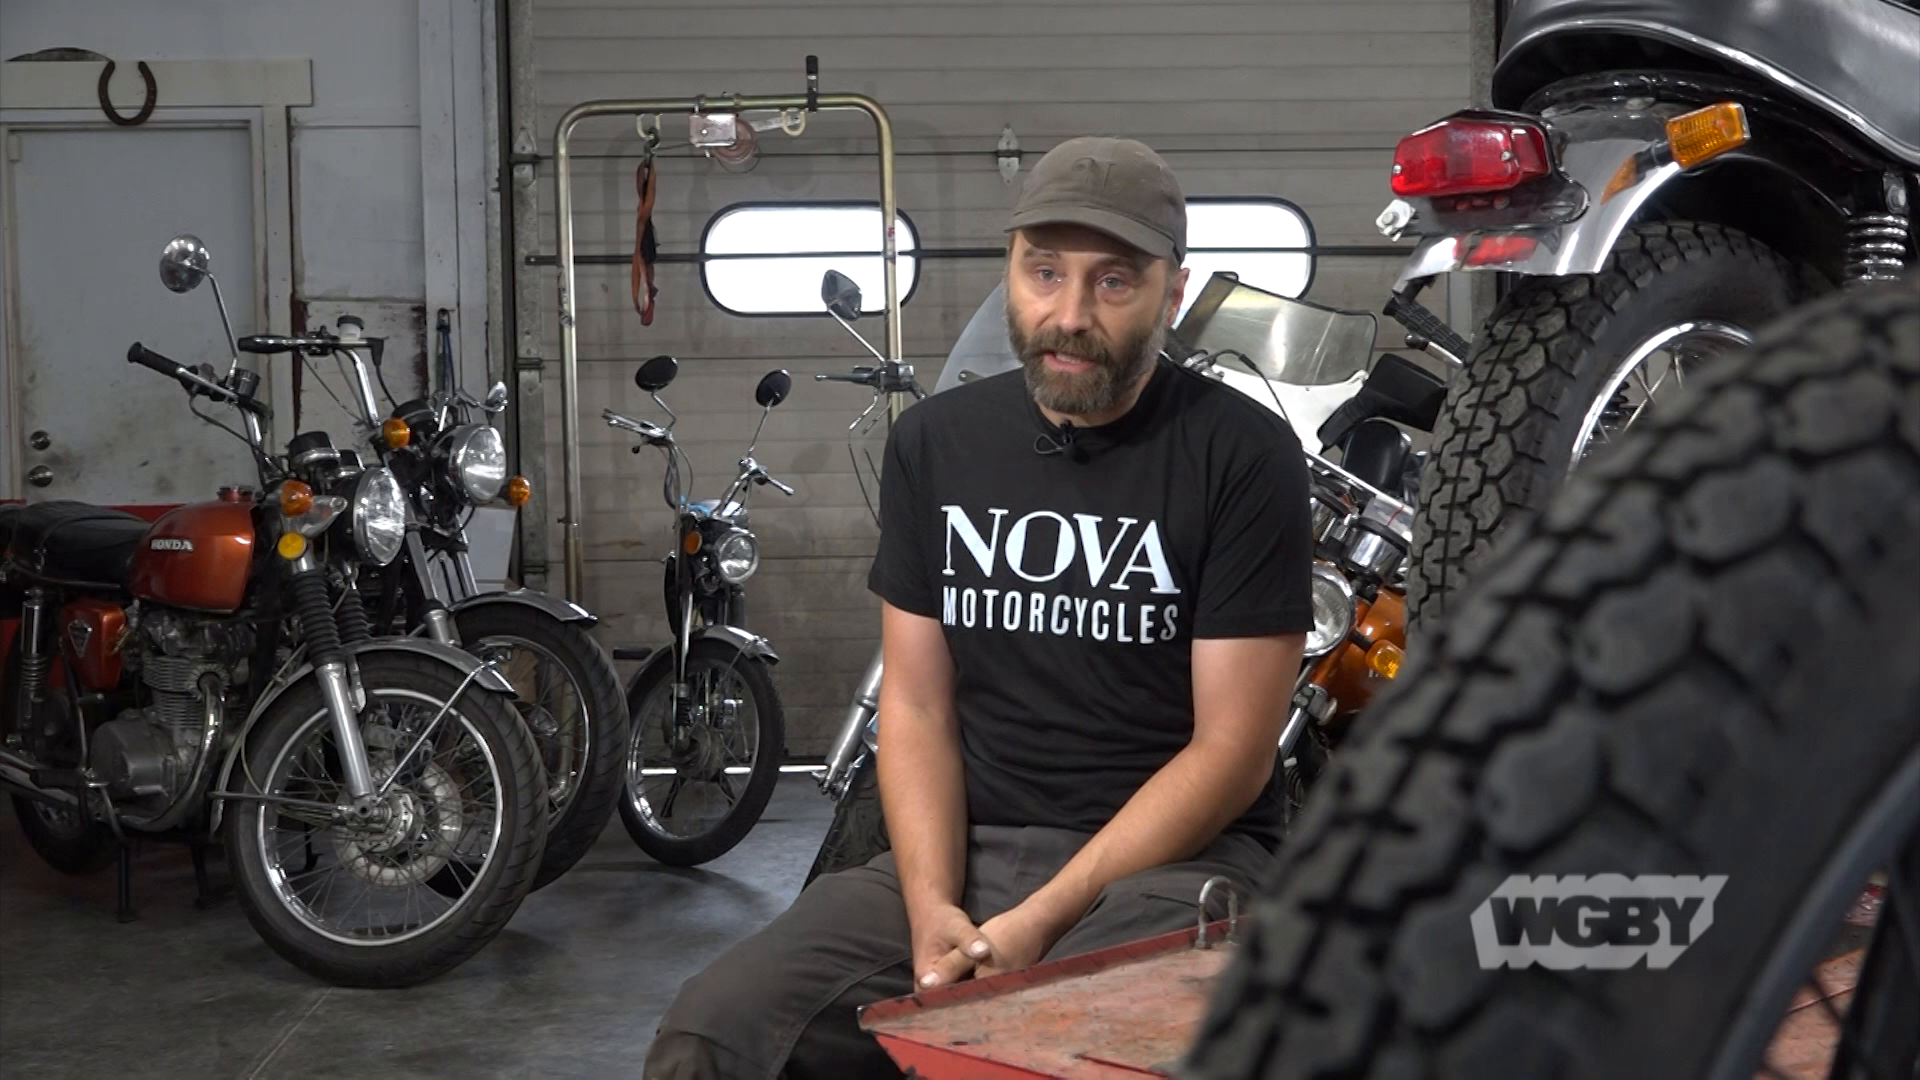 Visit NOVA Motorcycles Turners Falls, MA where honor a classic piece of Americana by restoring vintage motorcycles into modern rides.